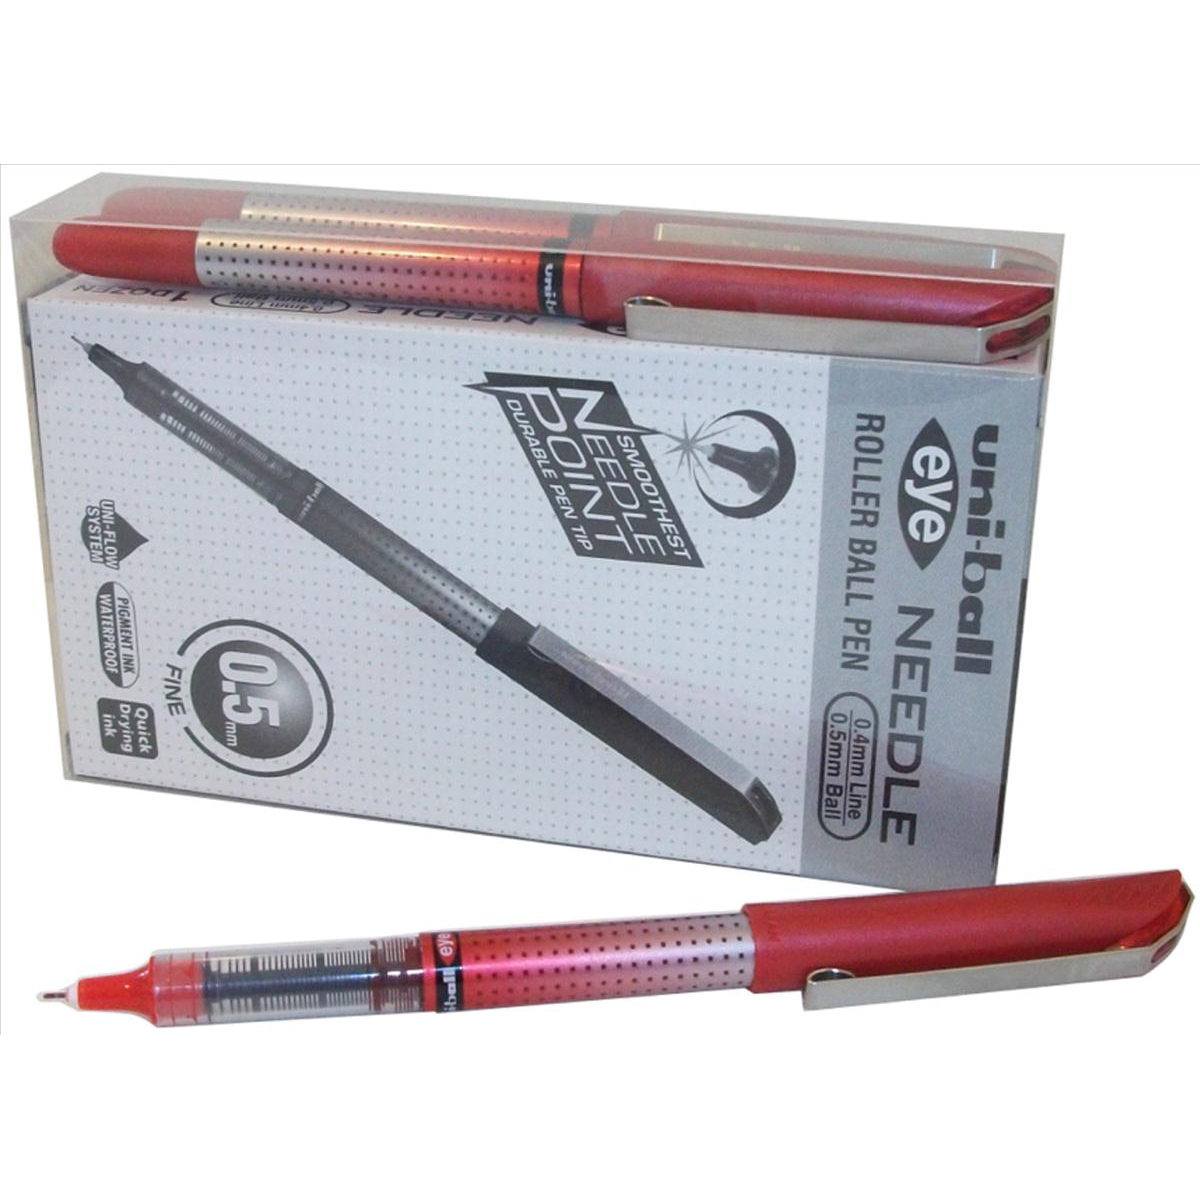 Uni-ball UB-185S Eye Needle Pen Stainless Steel Point Micro 0.5mm Tip Red Ref 153528384 [Pack 14 for 12]